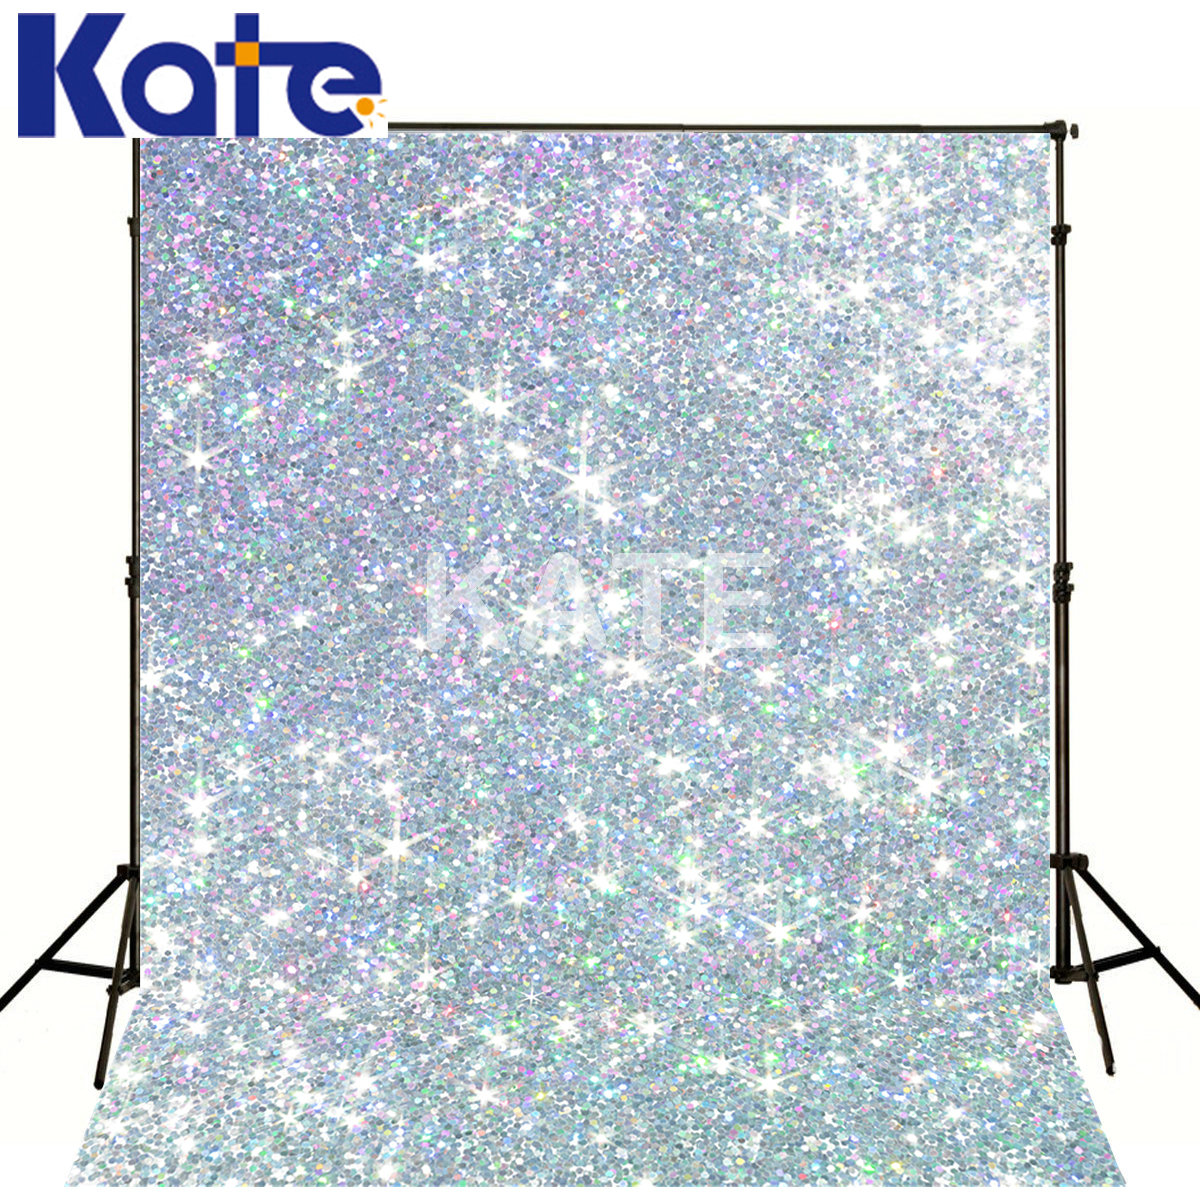 Kate Photography Background Wood Bling  Bling For Wedding  Or newborn Baby Photography Background Photo Studio Backdrop 10x10<br><br>Aliexpress